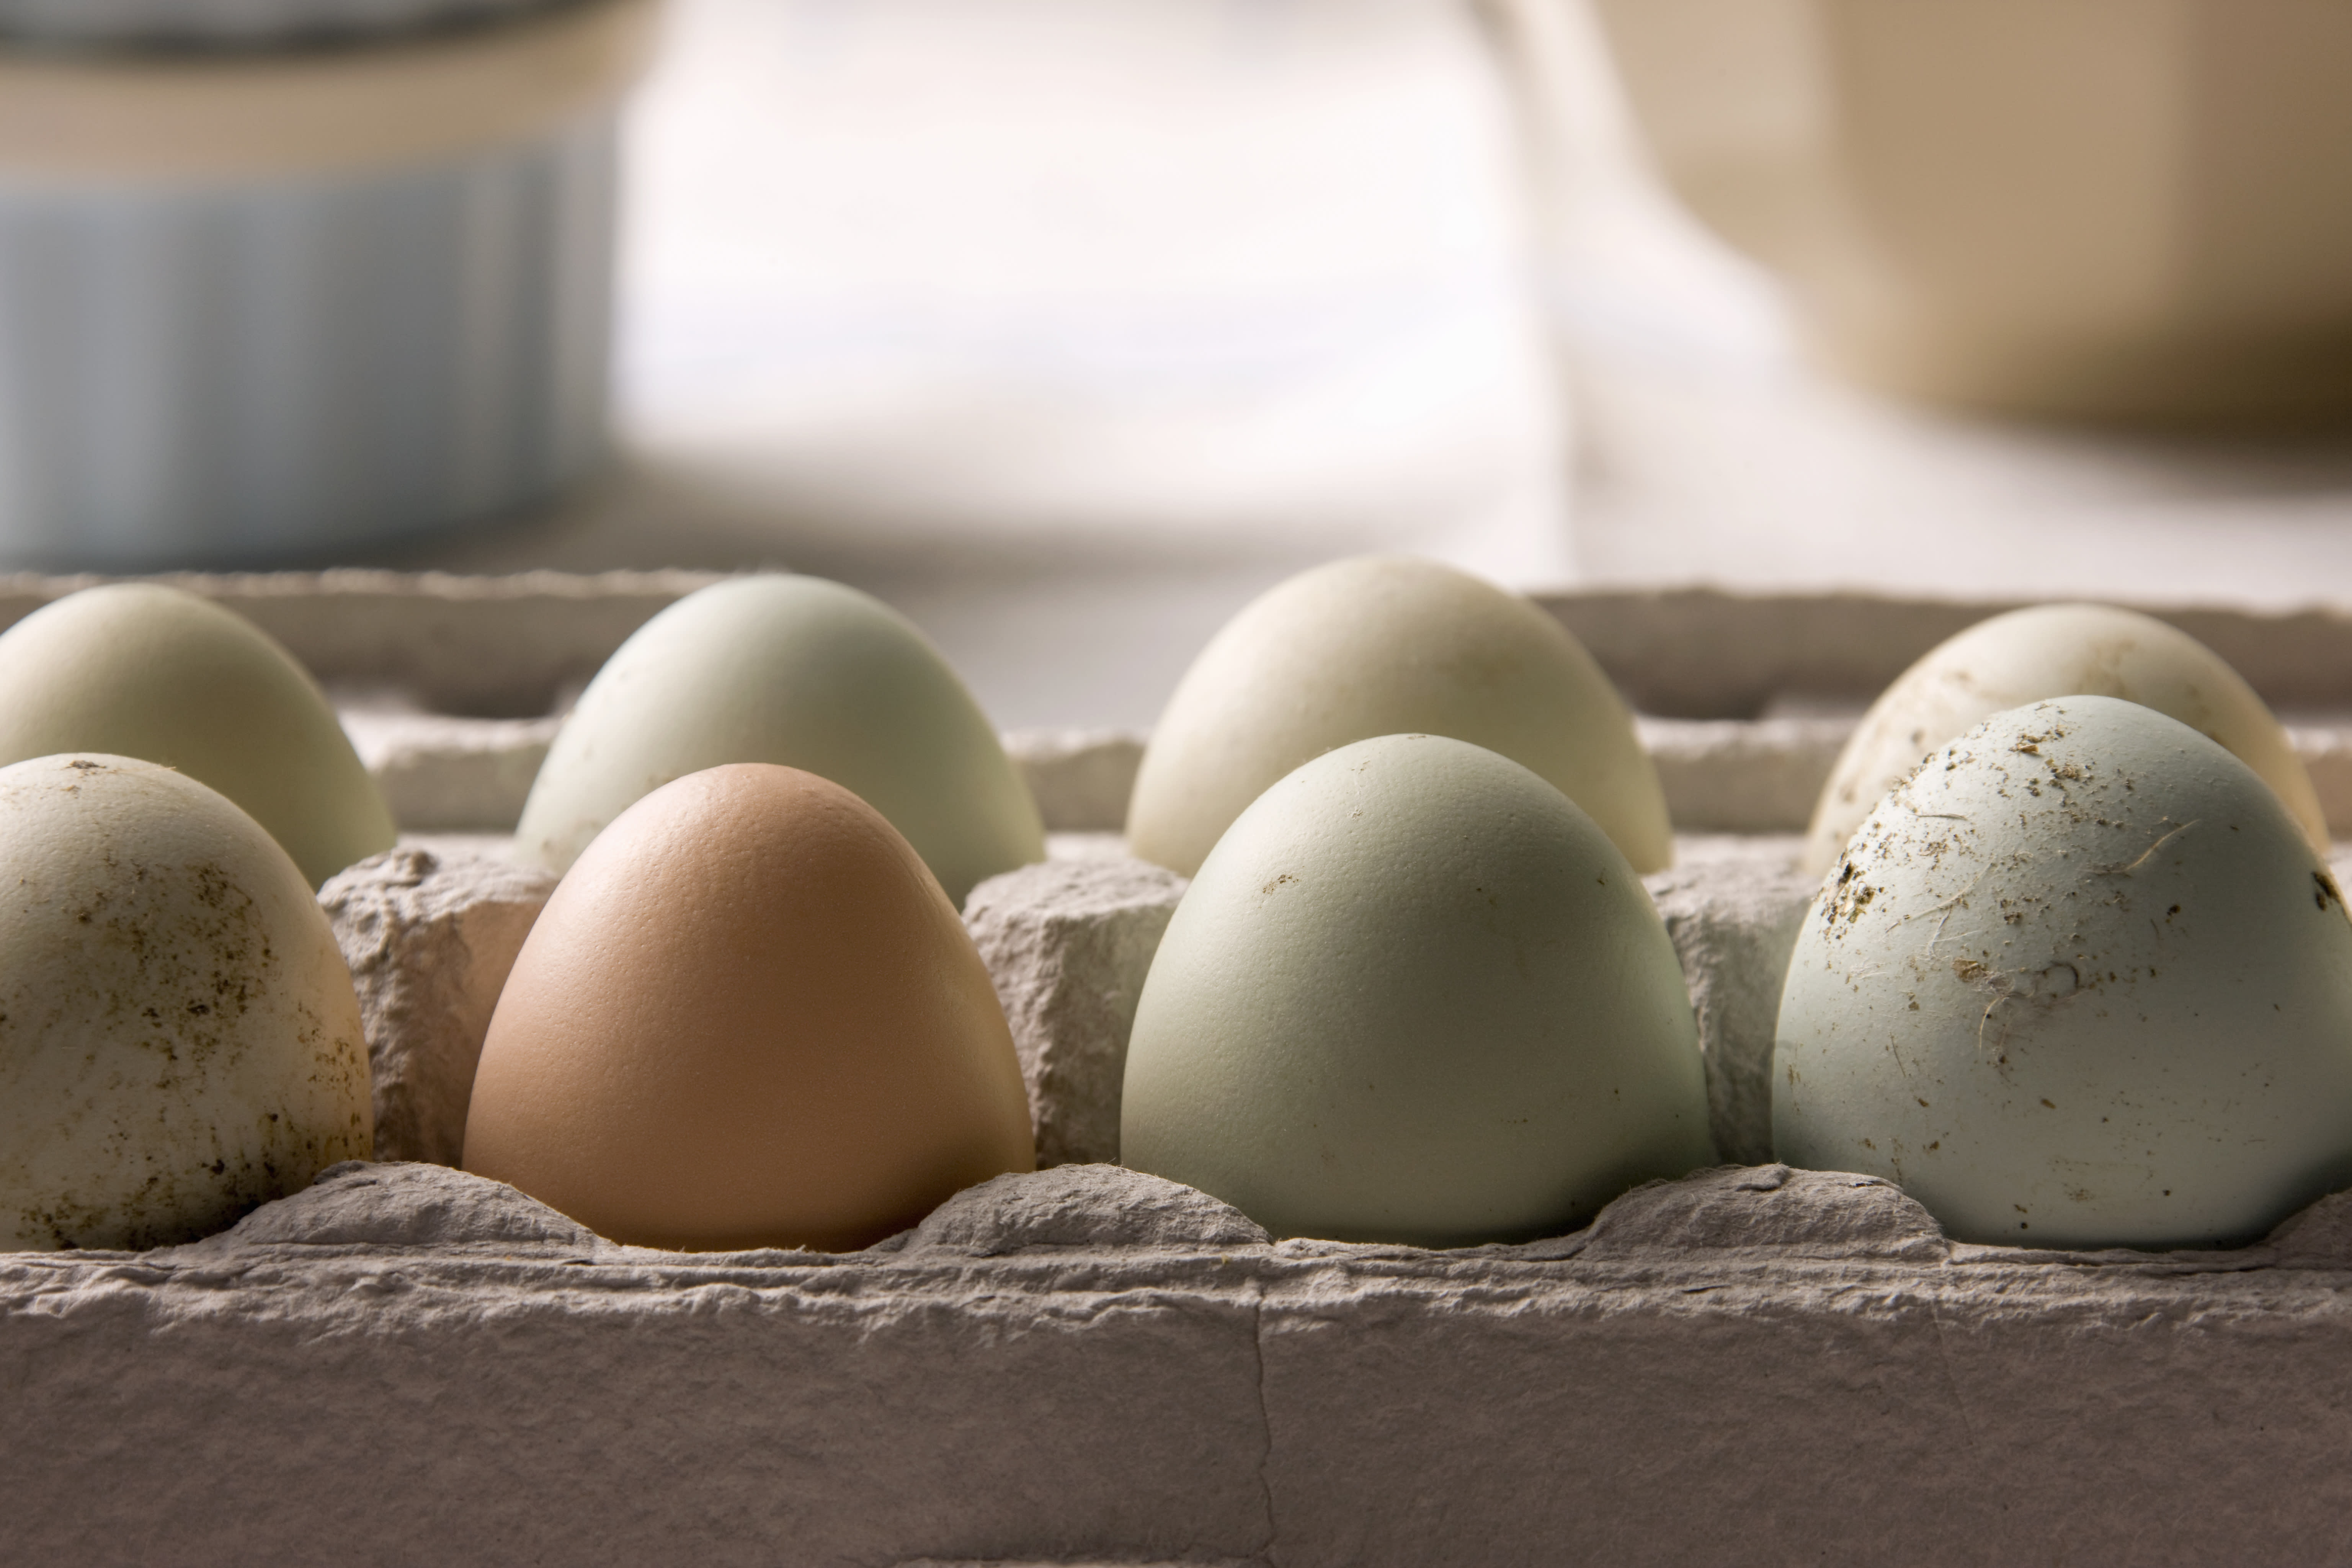 Fridge or pantry? Where you should really be storing your eggs